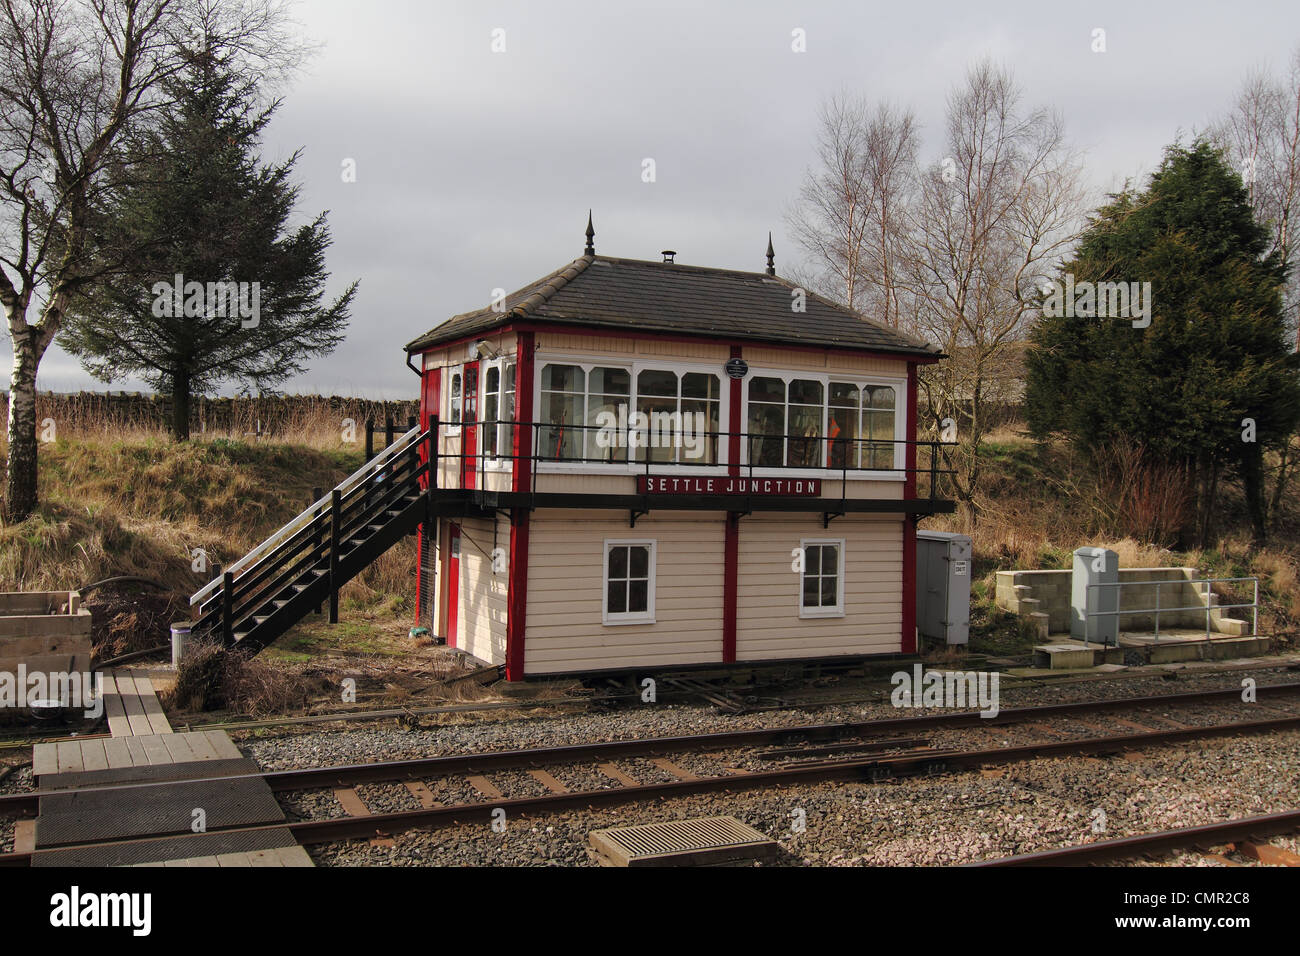 railway signal box - Stock Image